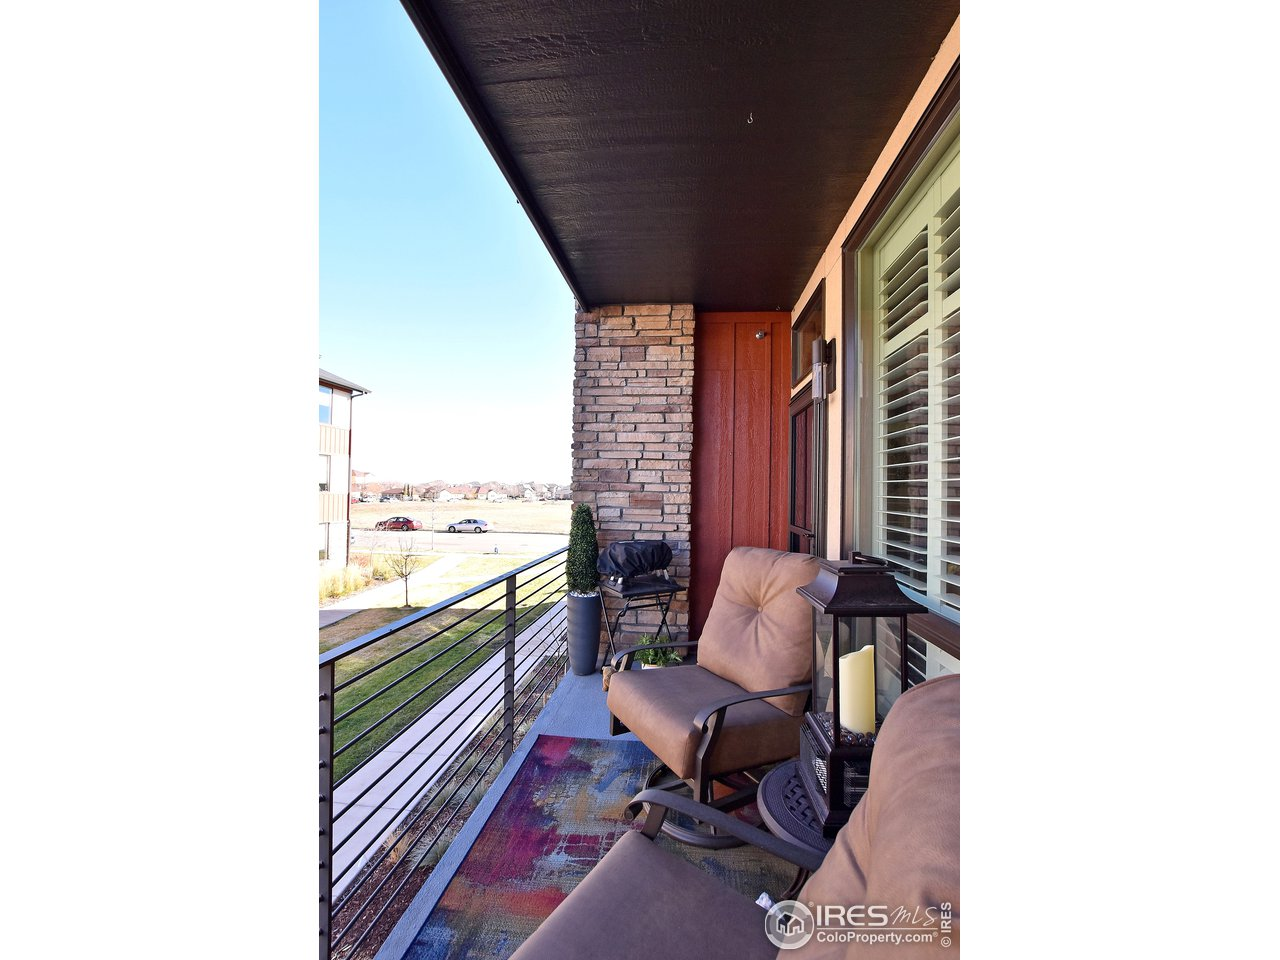 Spacious feel and grills are allowed! Serene views all around